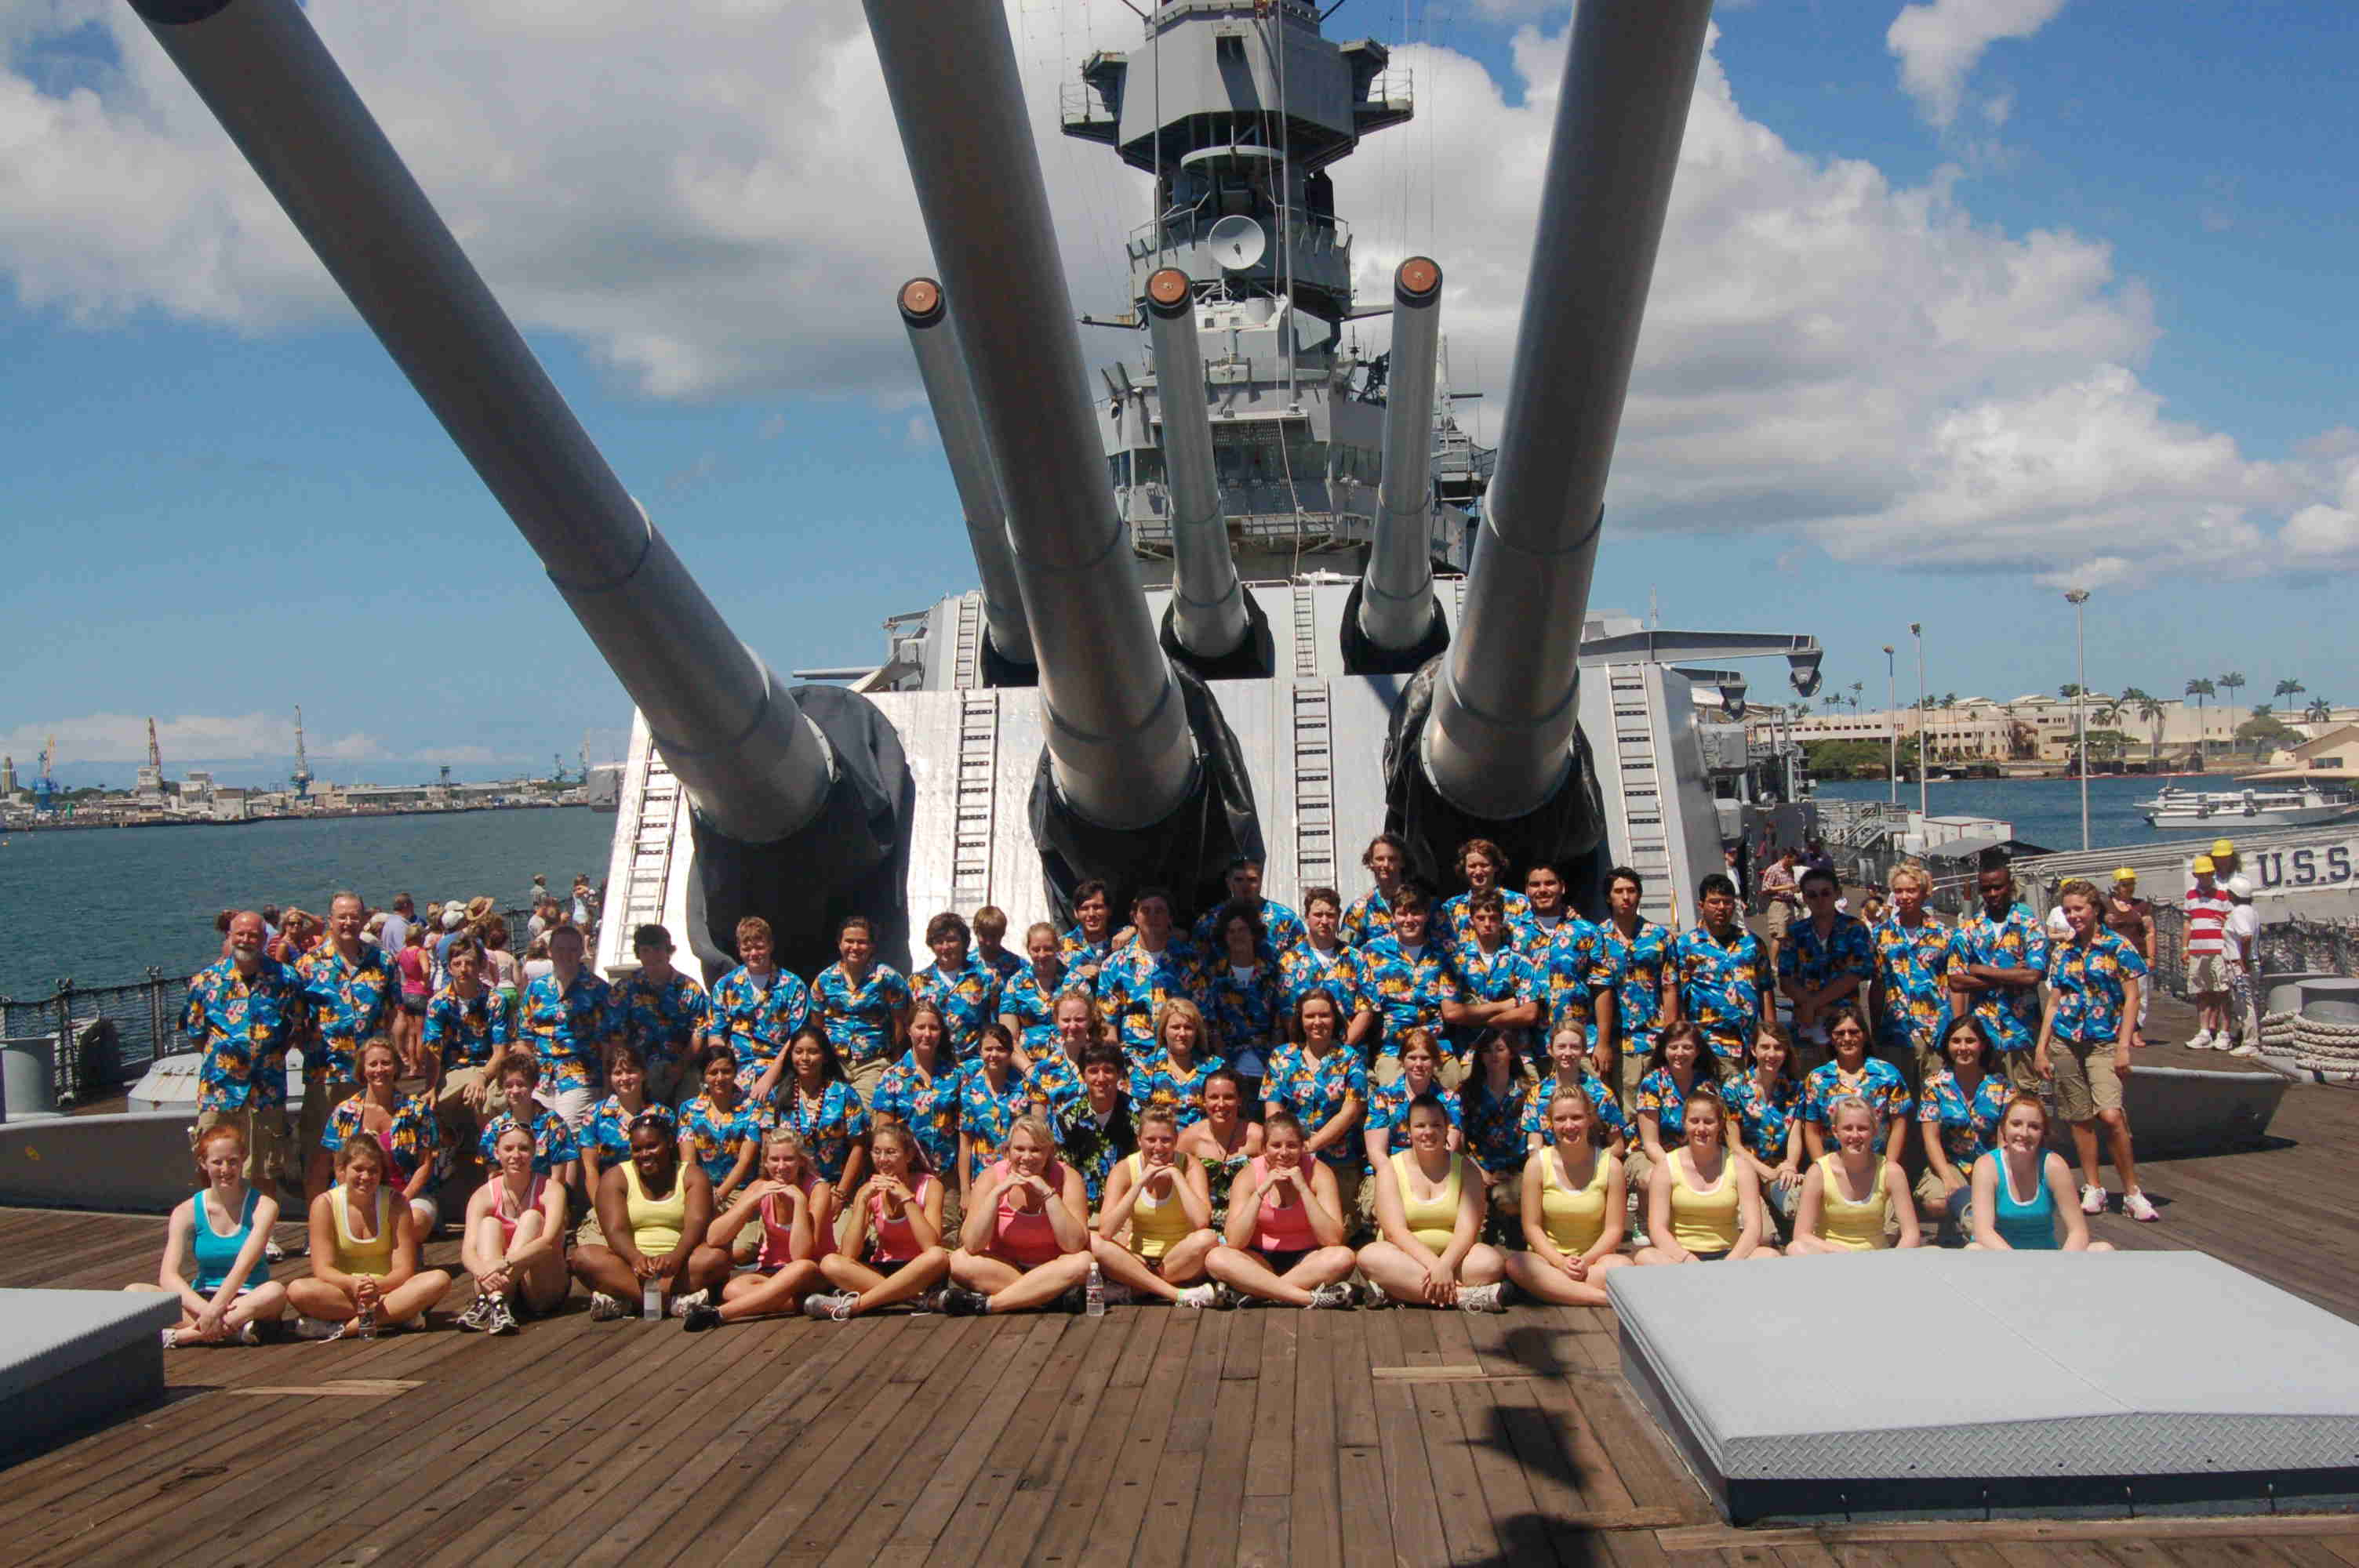 On the deck of the Battleship Missouri Memorial